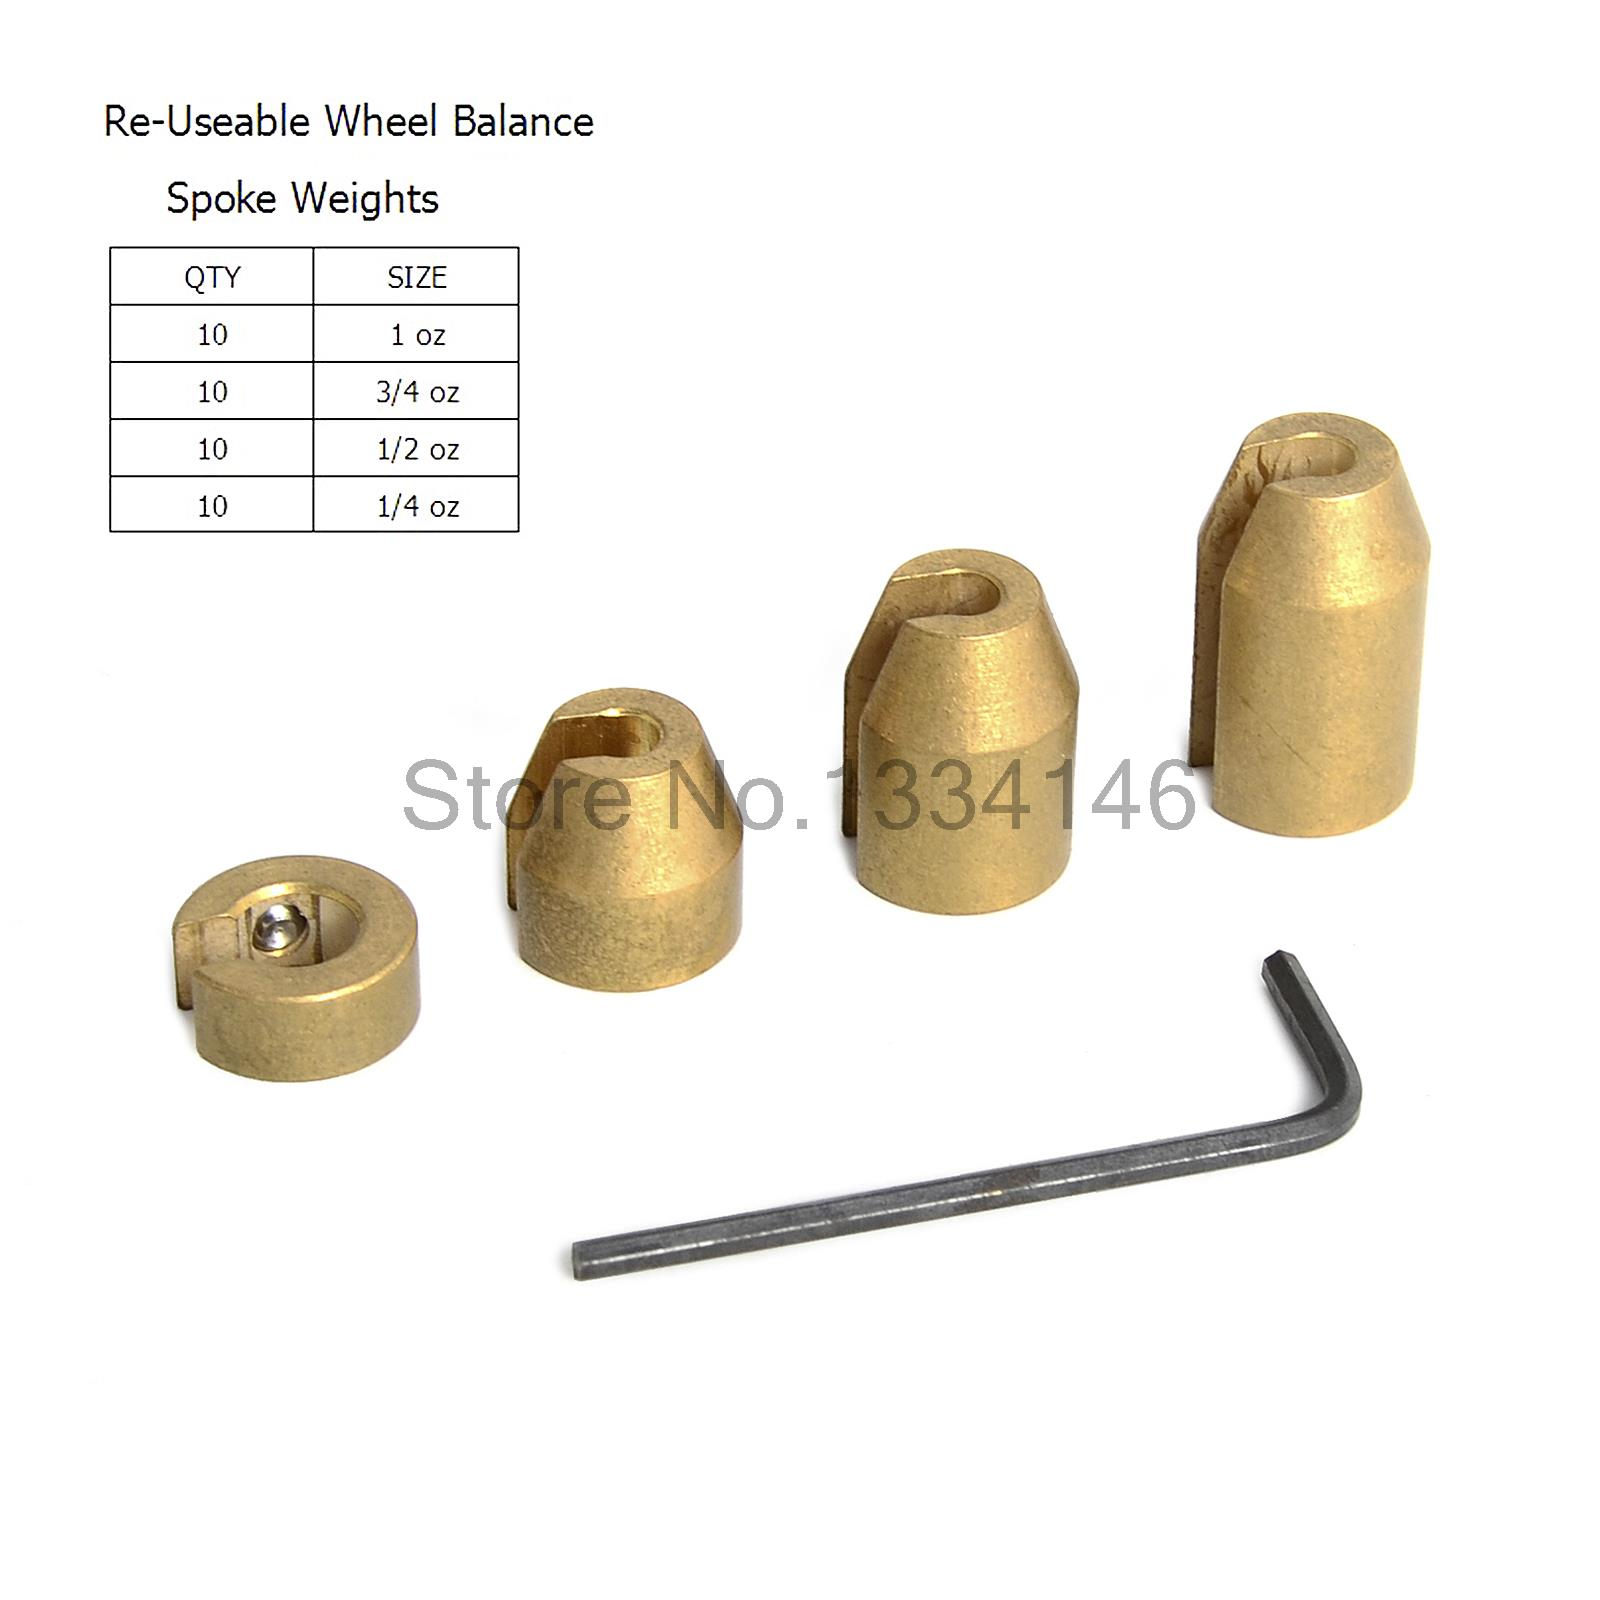 Reusable Motorcycle Wheel Balance Weights For Spoke Wheels